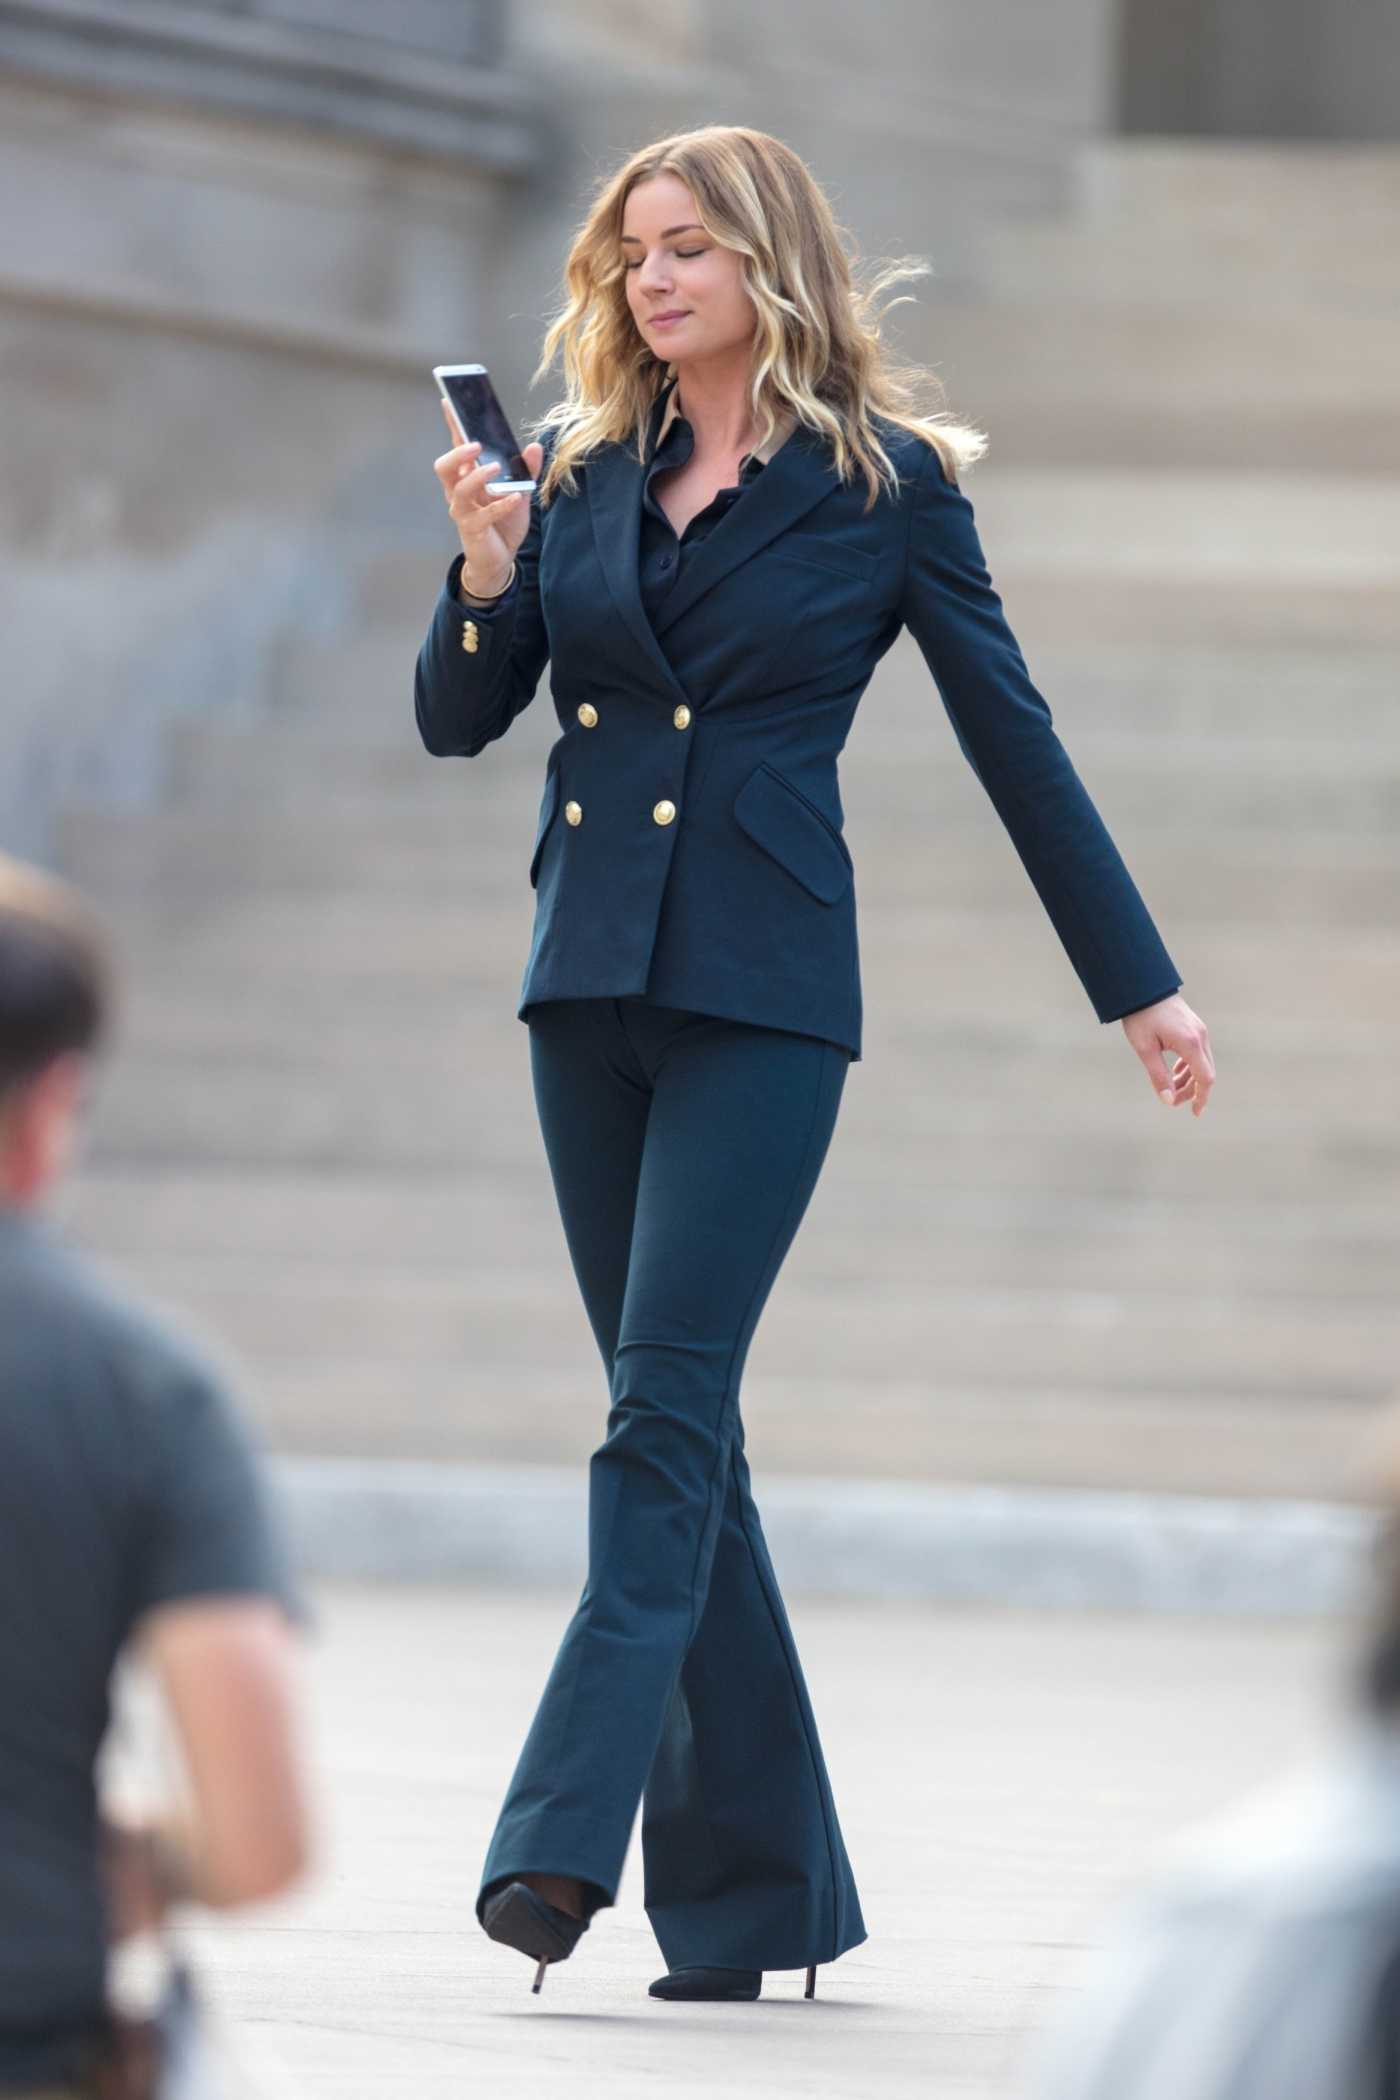 Emily VanCamp in a Blue Suit on the Set of The Falcon and the Winter Soldier in Atlanta 09/14/2020